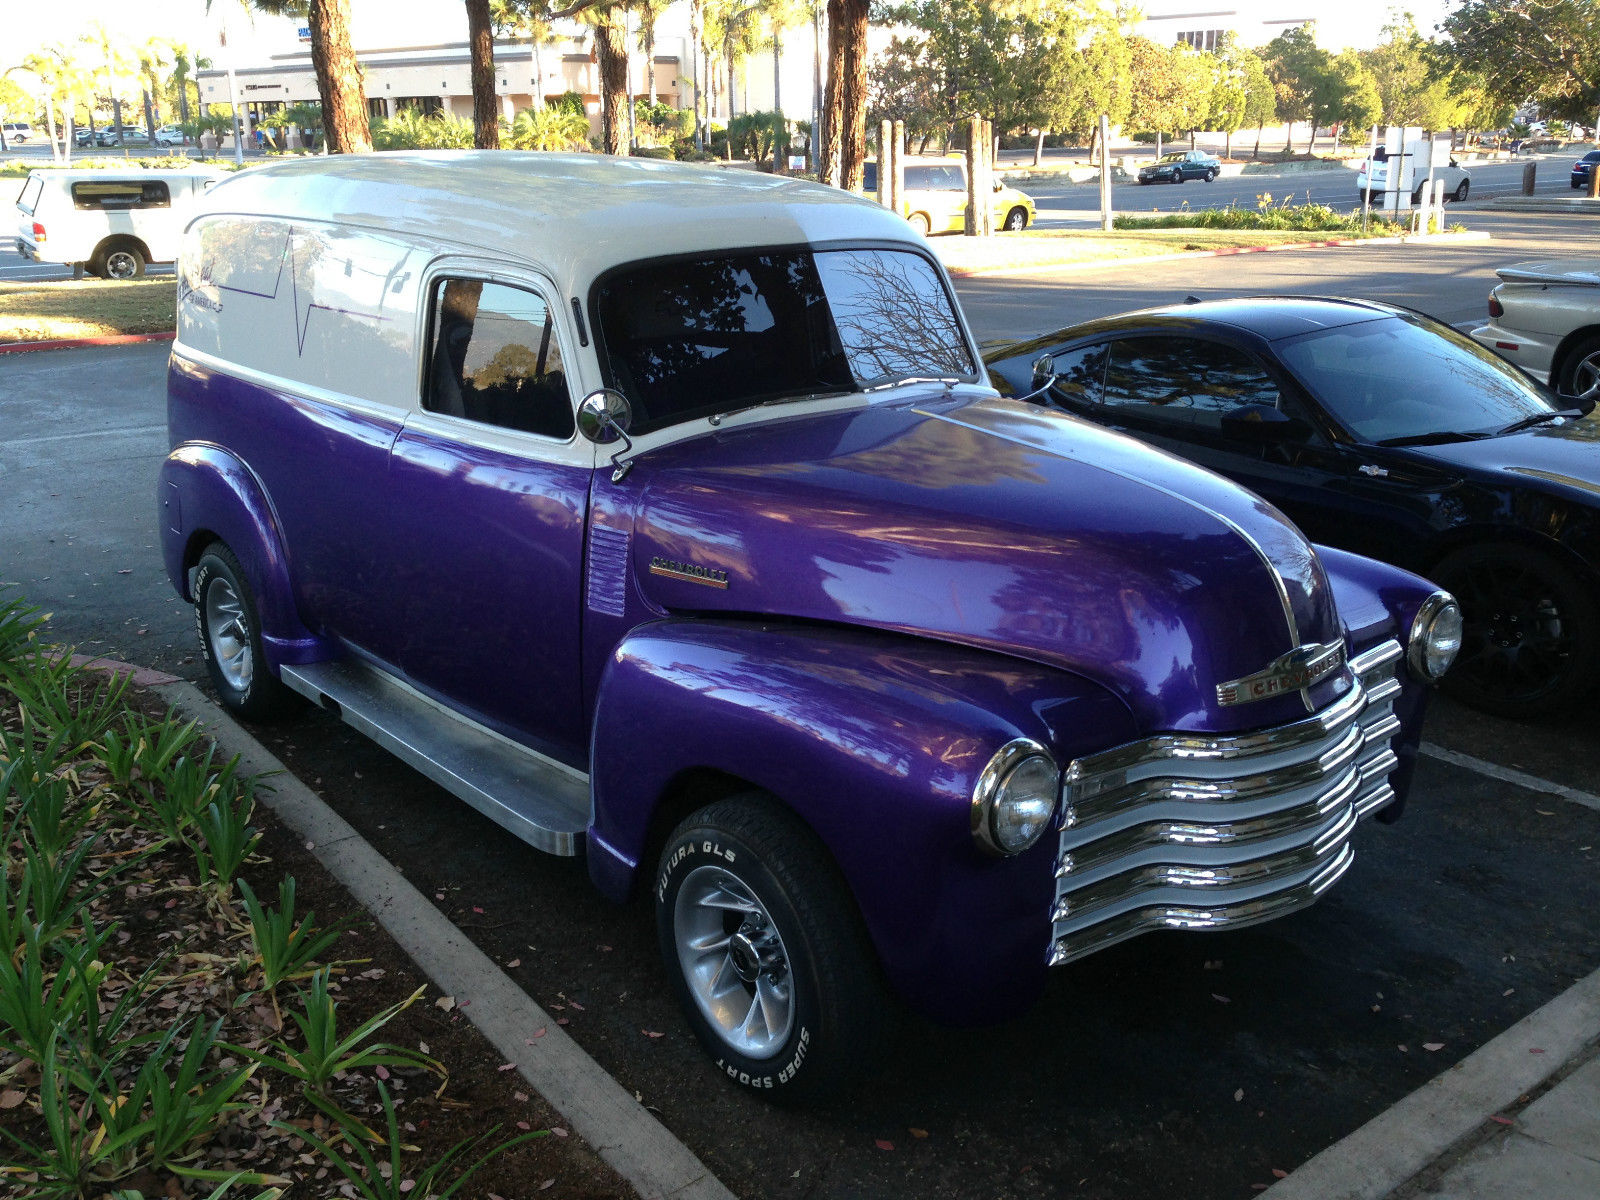 1950 Chevrolet Panel Truck Classic Hot Street Rod Muscle 3100 Not 1949 Chevy Stepside Other Pickups 3105 1947 1948 1951 1952 1953 1954